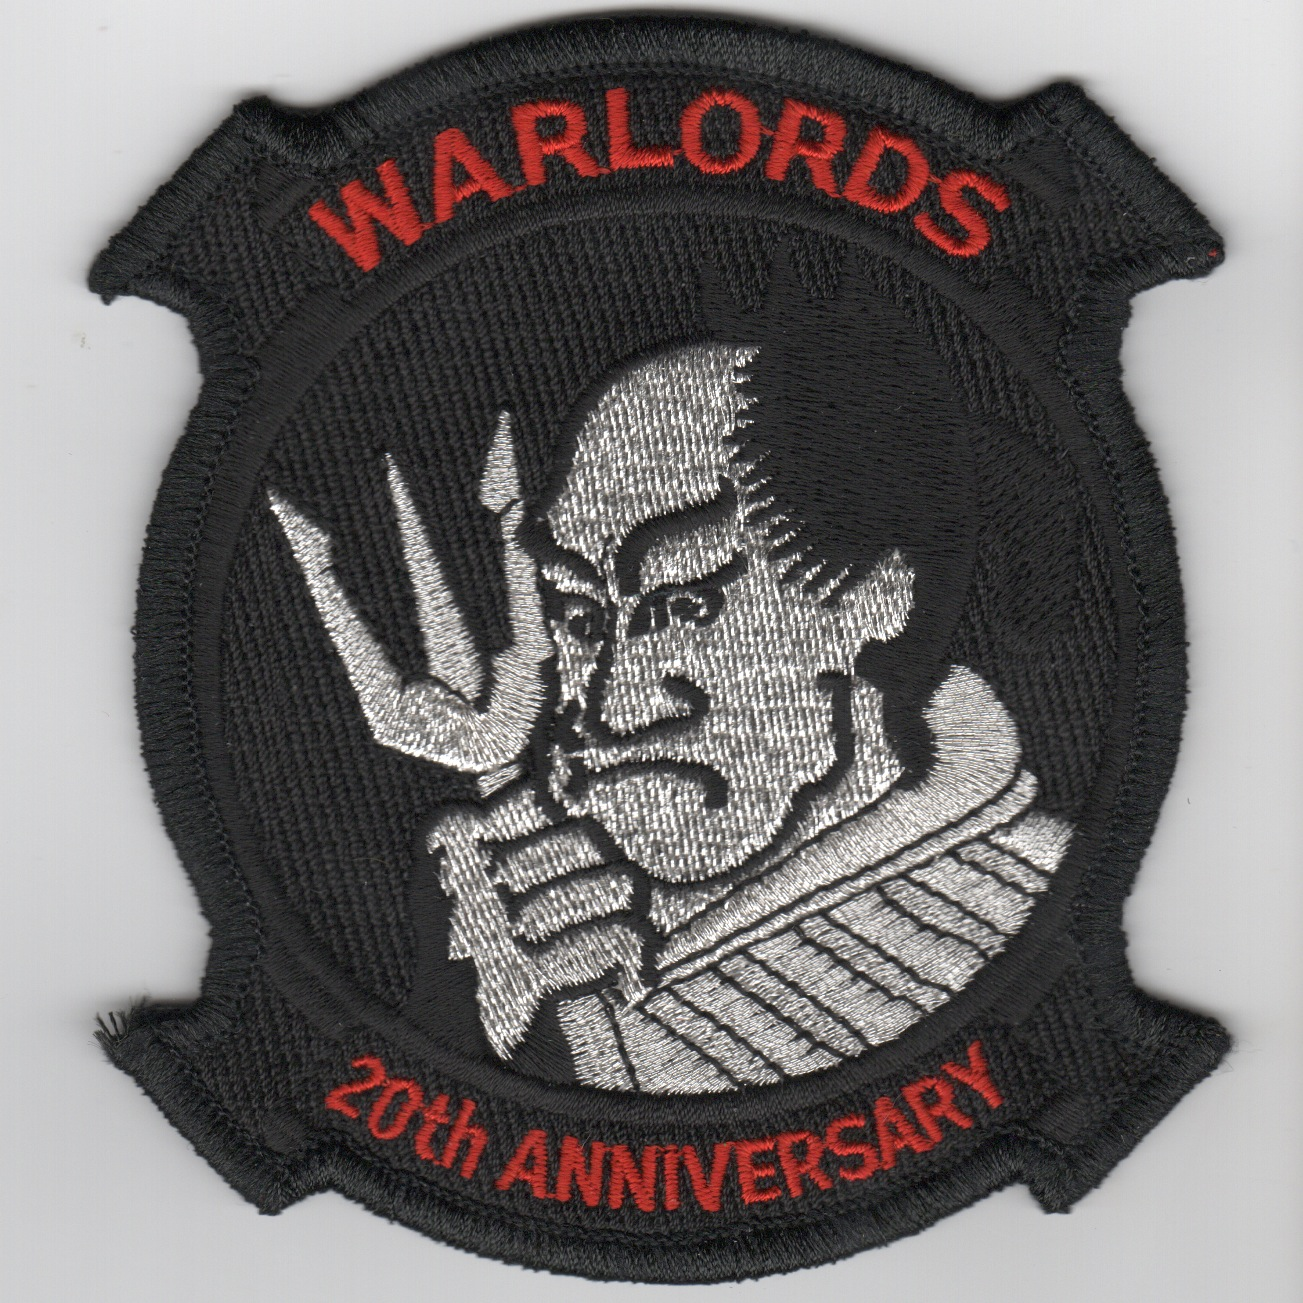 HSL-51 'Warlords' 20th Anniversary Patch